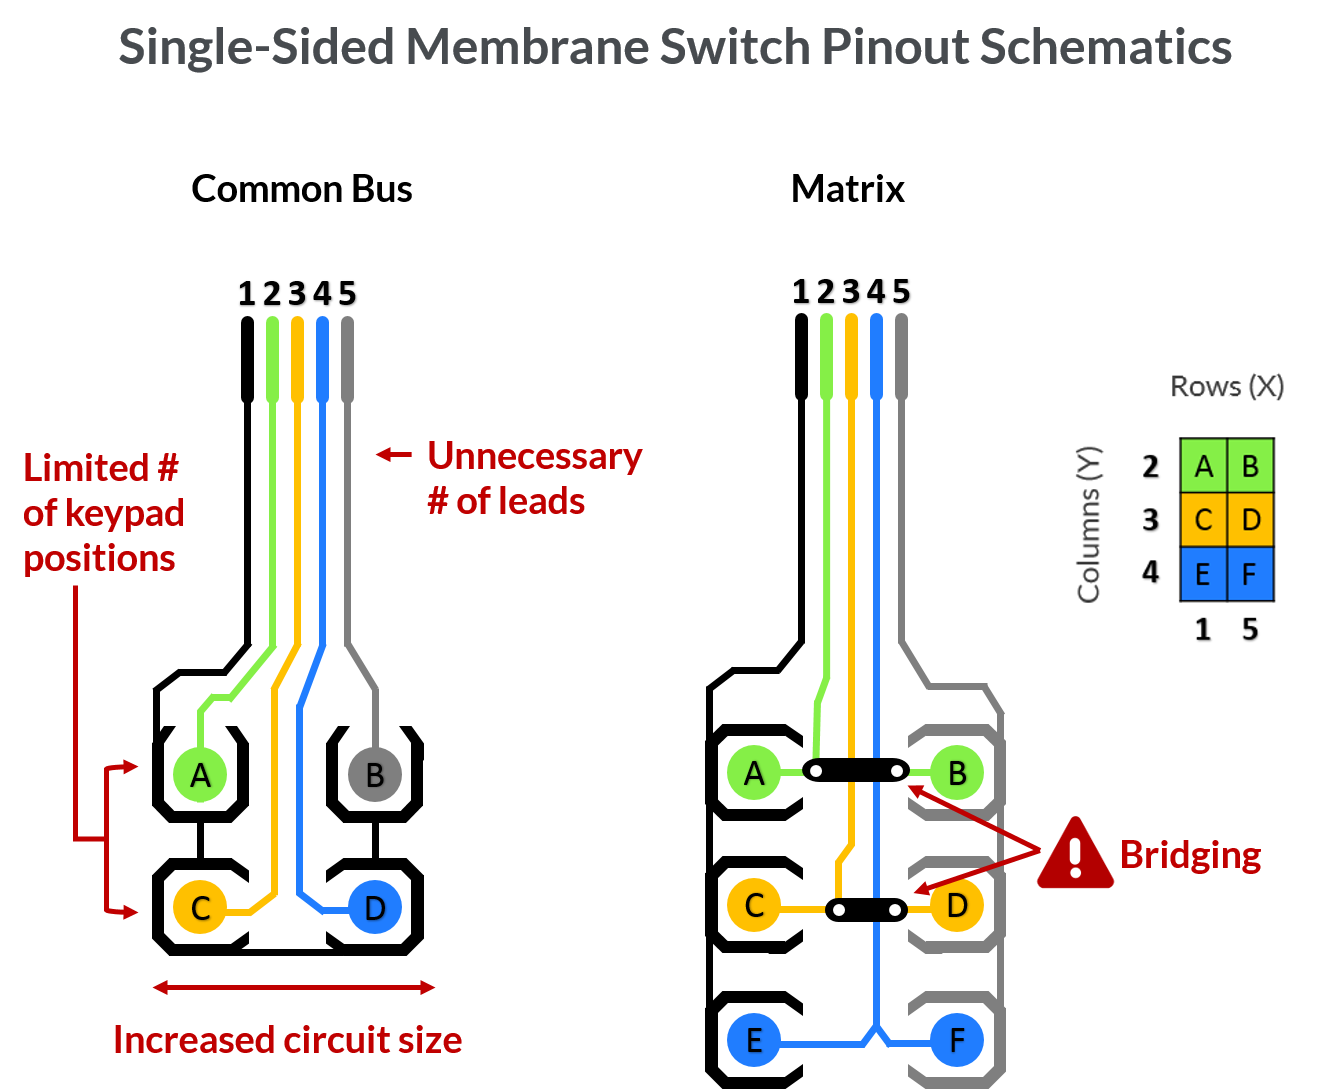 The above image features two examples of membrane switch pinout schematics  (Common Bus and Matrix Layout),  which are not optimized for reliability or efficiency due to their single-sided design. Reliatrace®'s Double-Sided Polymer Circuitry (D/SPC)® technology provides you with enhanced capabilities that eliminate these areas of weakness, significantly reducing your risk of circuitry failure.